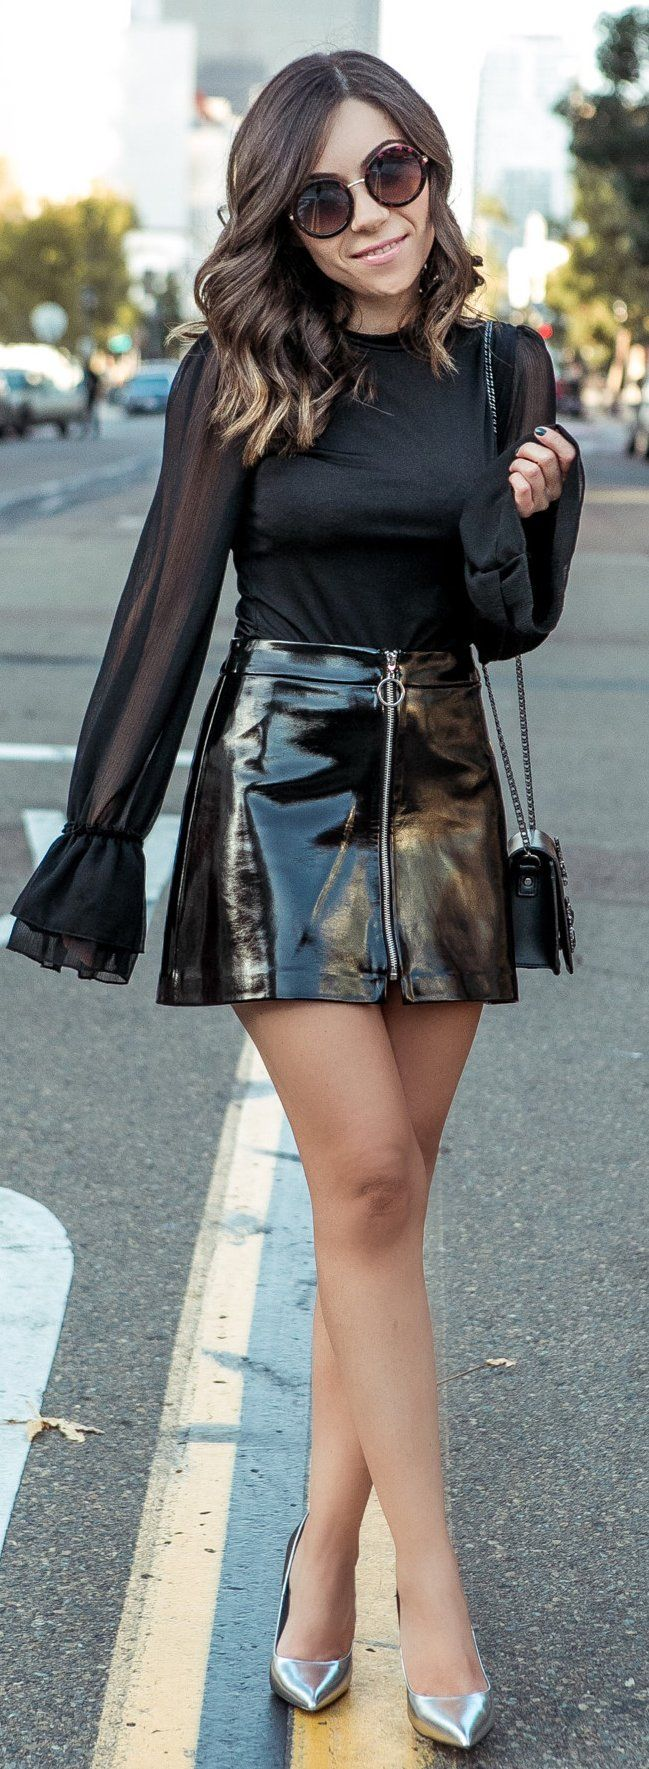 #winter #fashion /  Black Silk Top / Black Leather Skirt / Metallic Pumps